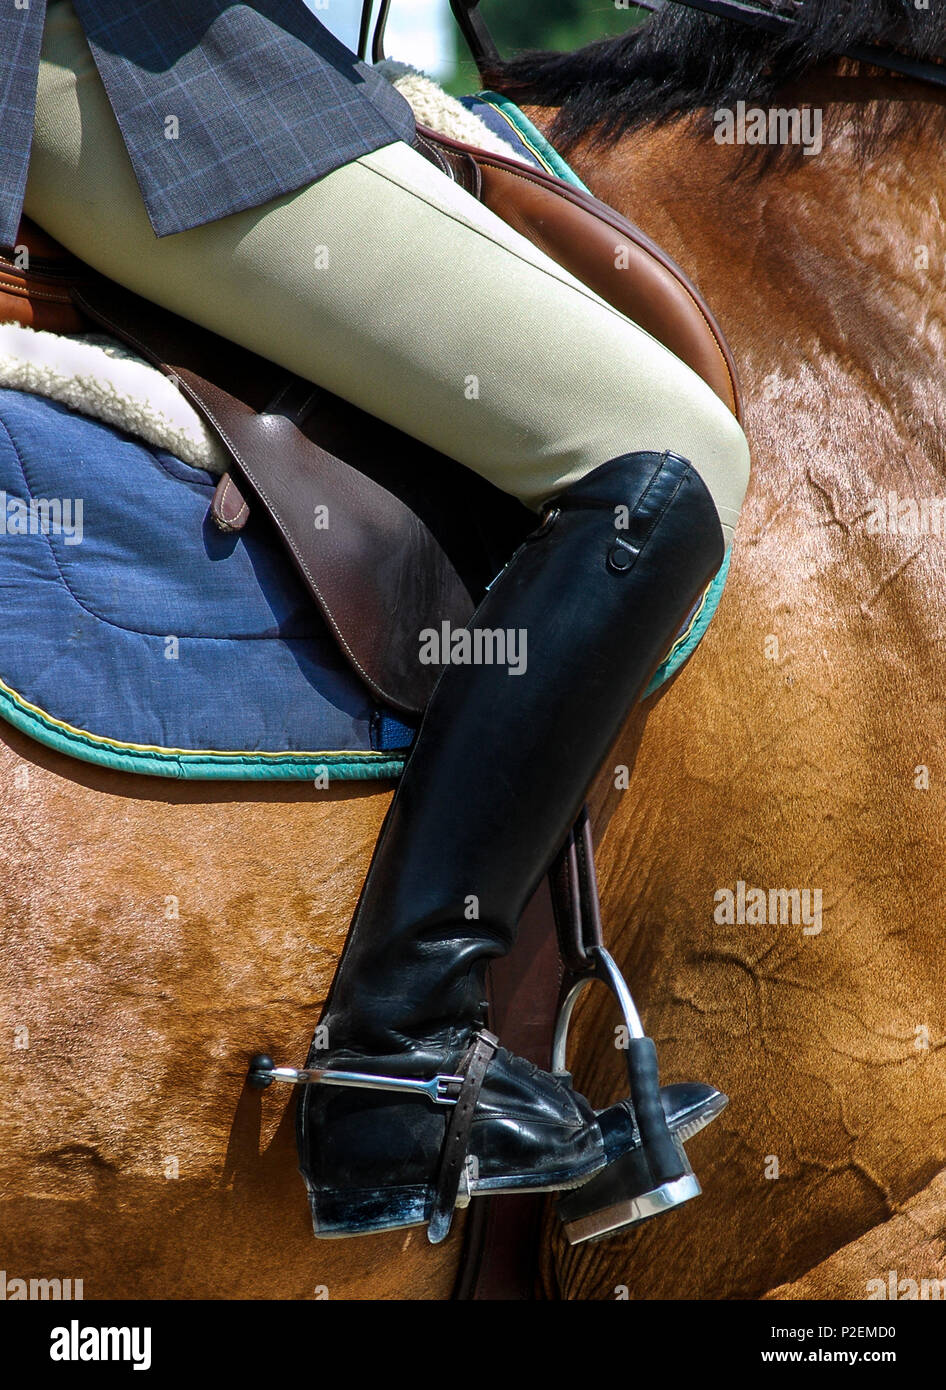 Female Equestrian With Elegant Black Riding Boots And Spurs Stock Photo Alamy